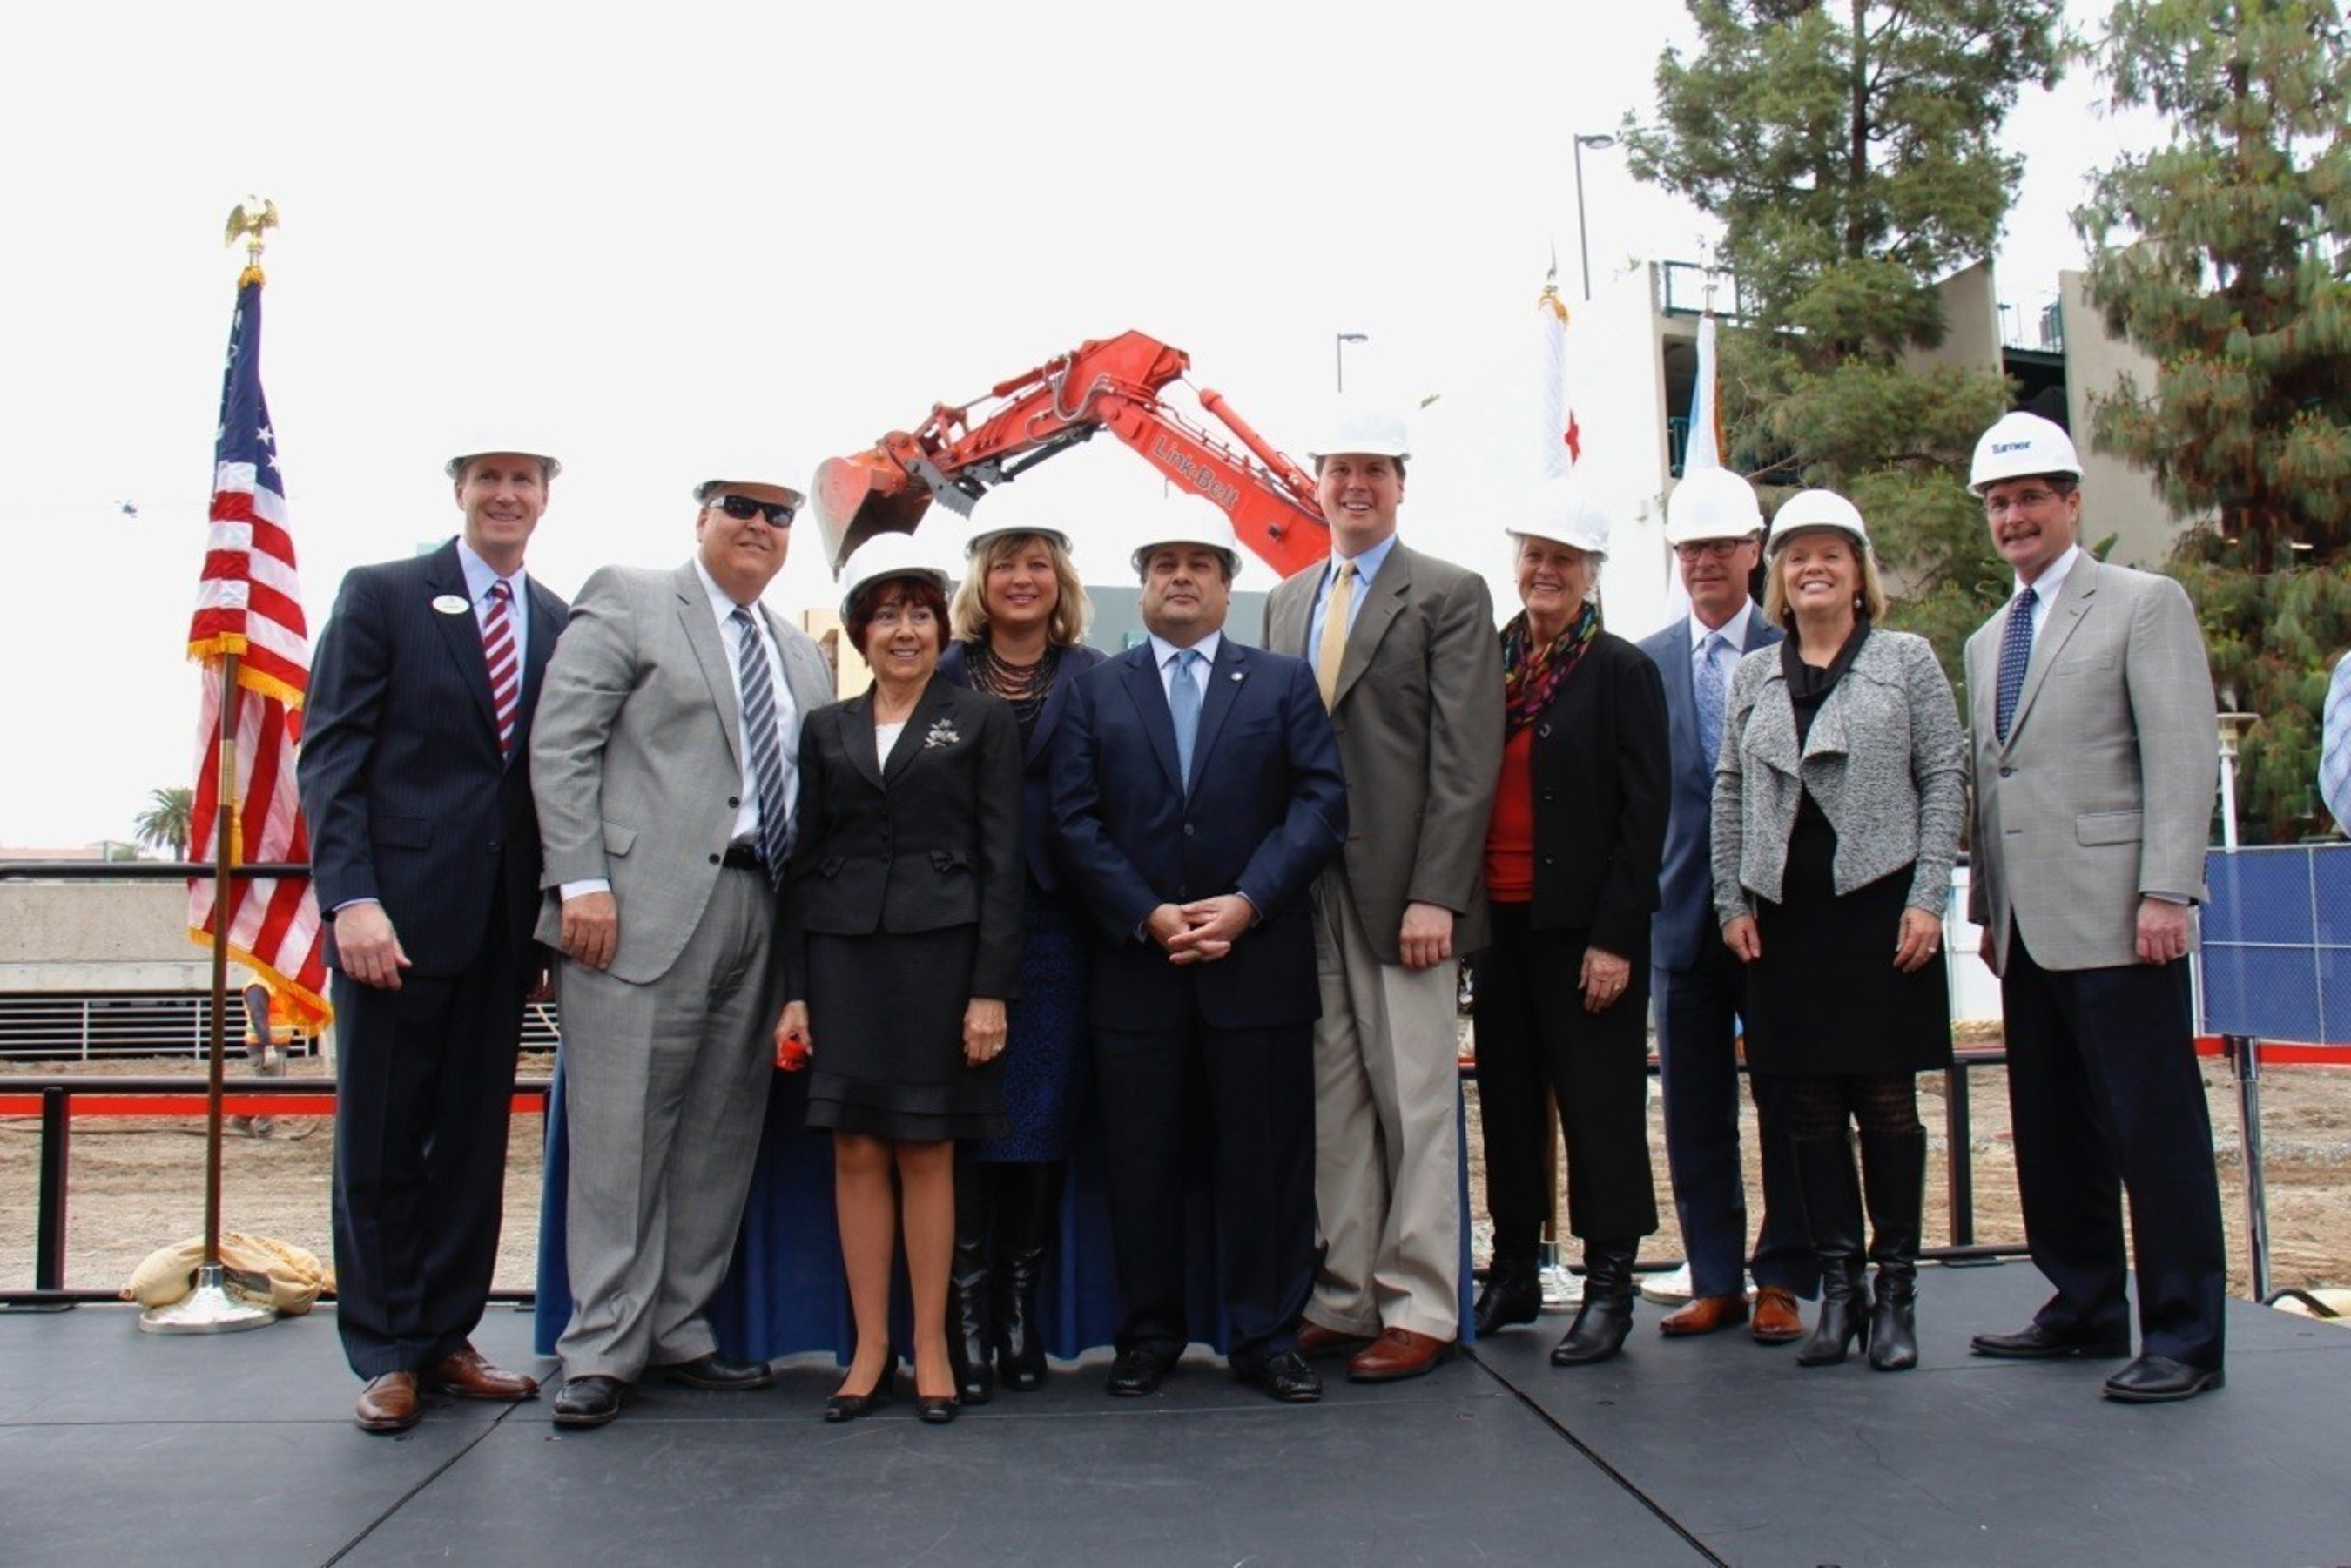 Anaheim Convention Center, the largest convention center on the west coast, breaks ground on its seventh expansion, adding 200,000 sq. ft. more of flexible meeting space. (Credit: Anaheim/Orange County Visitor & Convention Bureau)